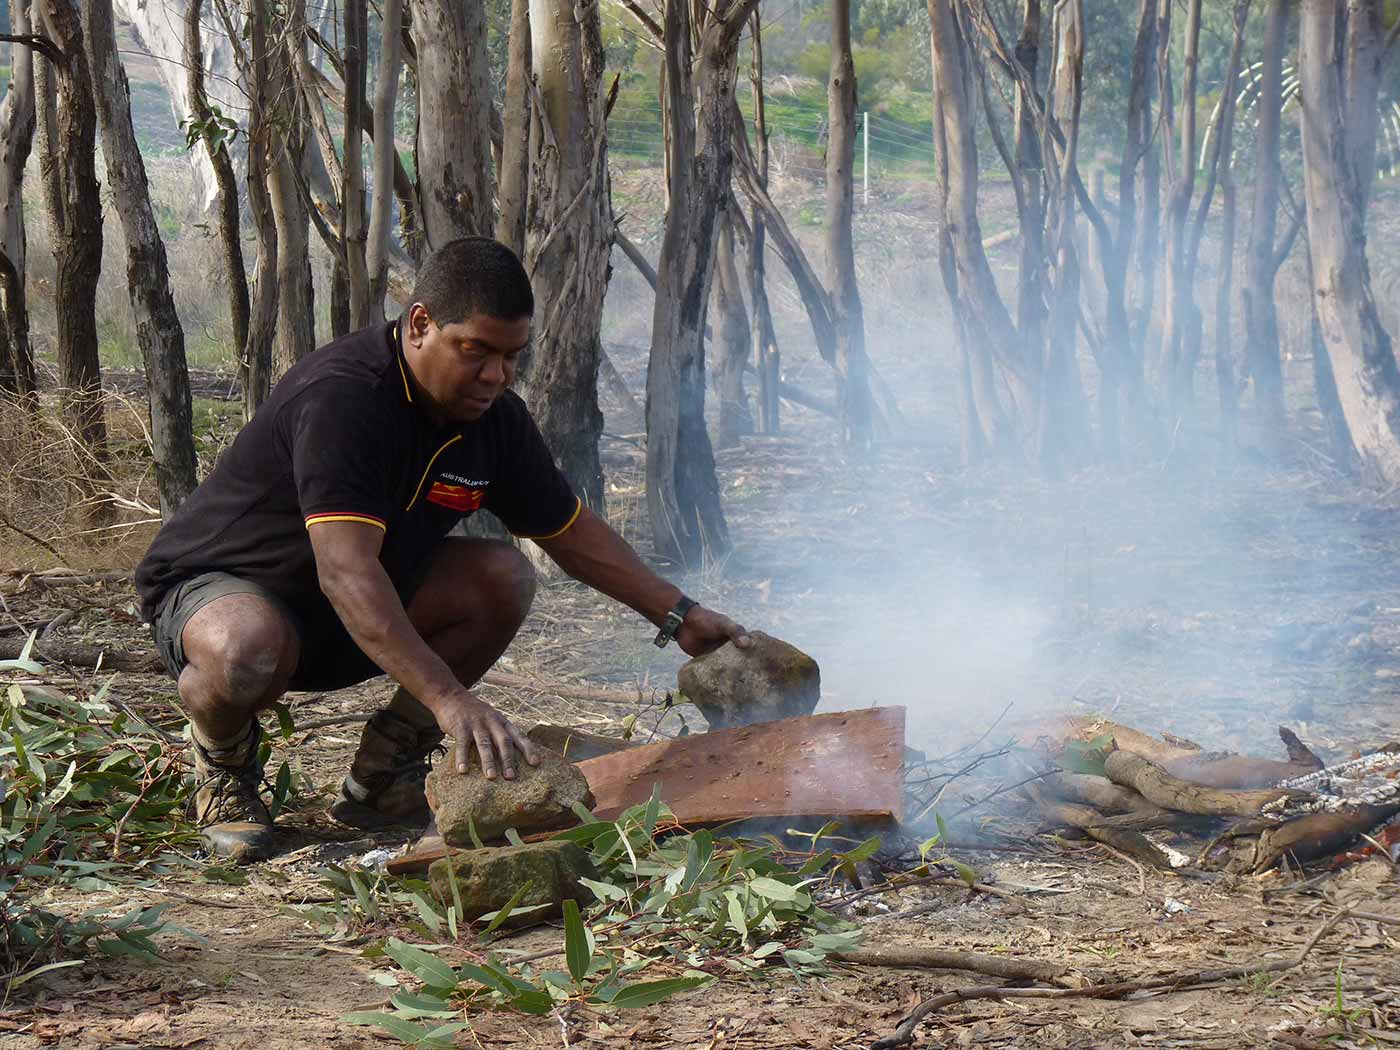 Jida Gulipilil making a bark etching by a fire. - click to view larger image